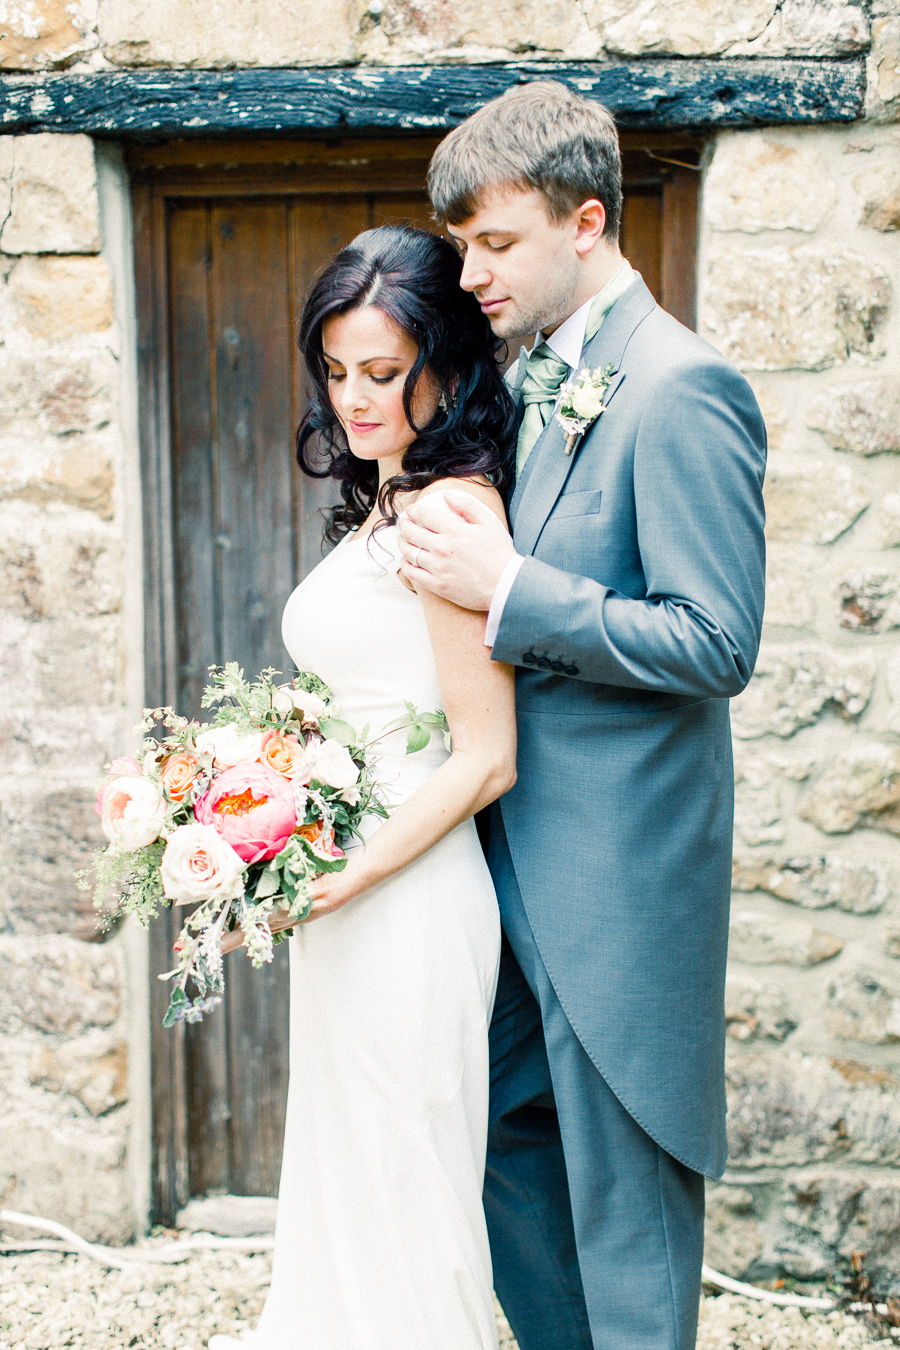 Jordans Courtyard rustic wedding styling ideas with images by Liz Baker Photography (38)